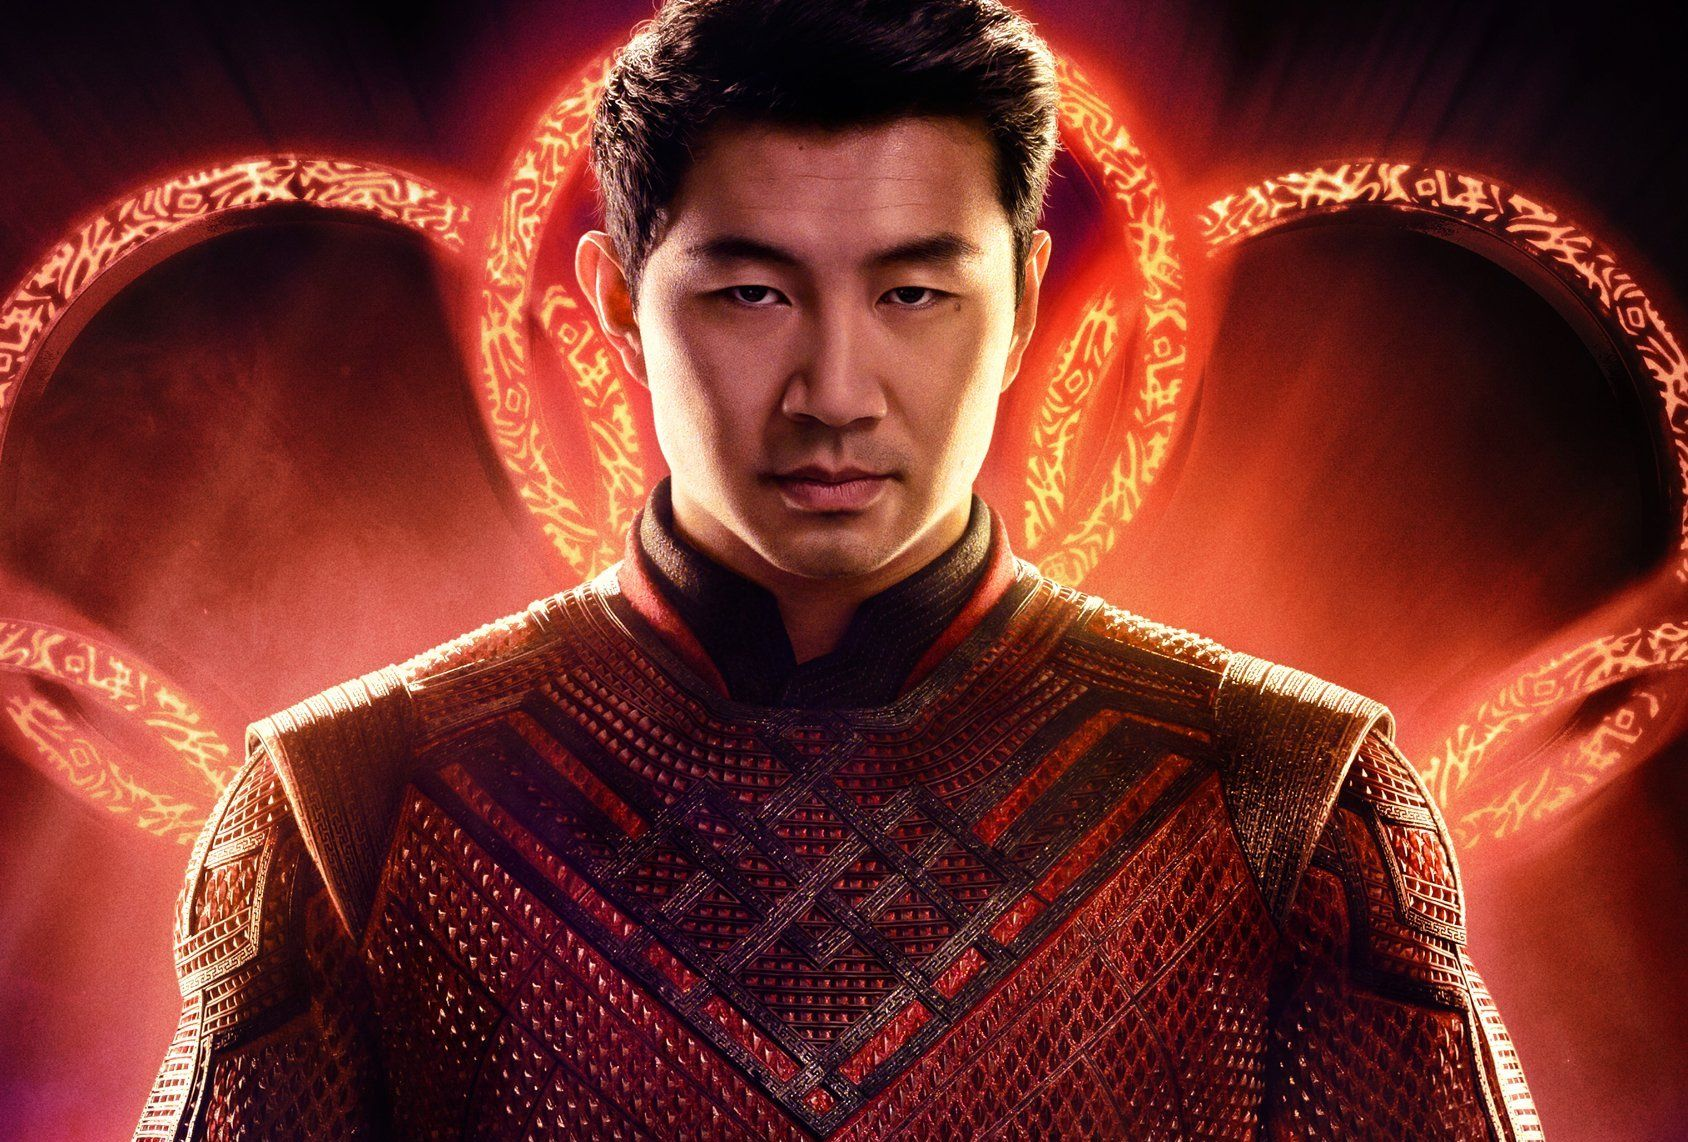 Marvel Releases Trailer For Shang-Chi, The First Asian Superhero